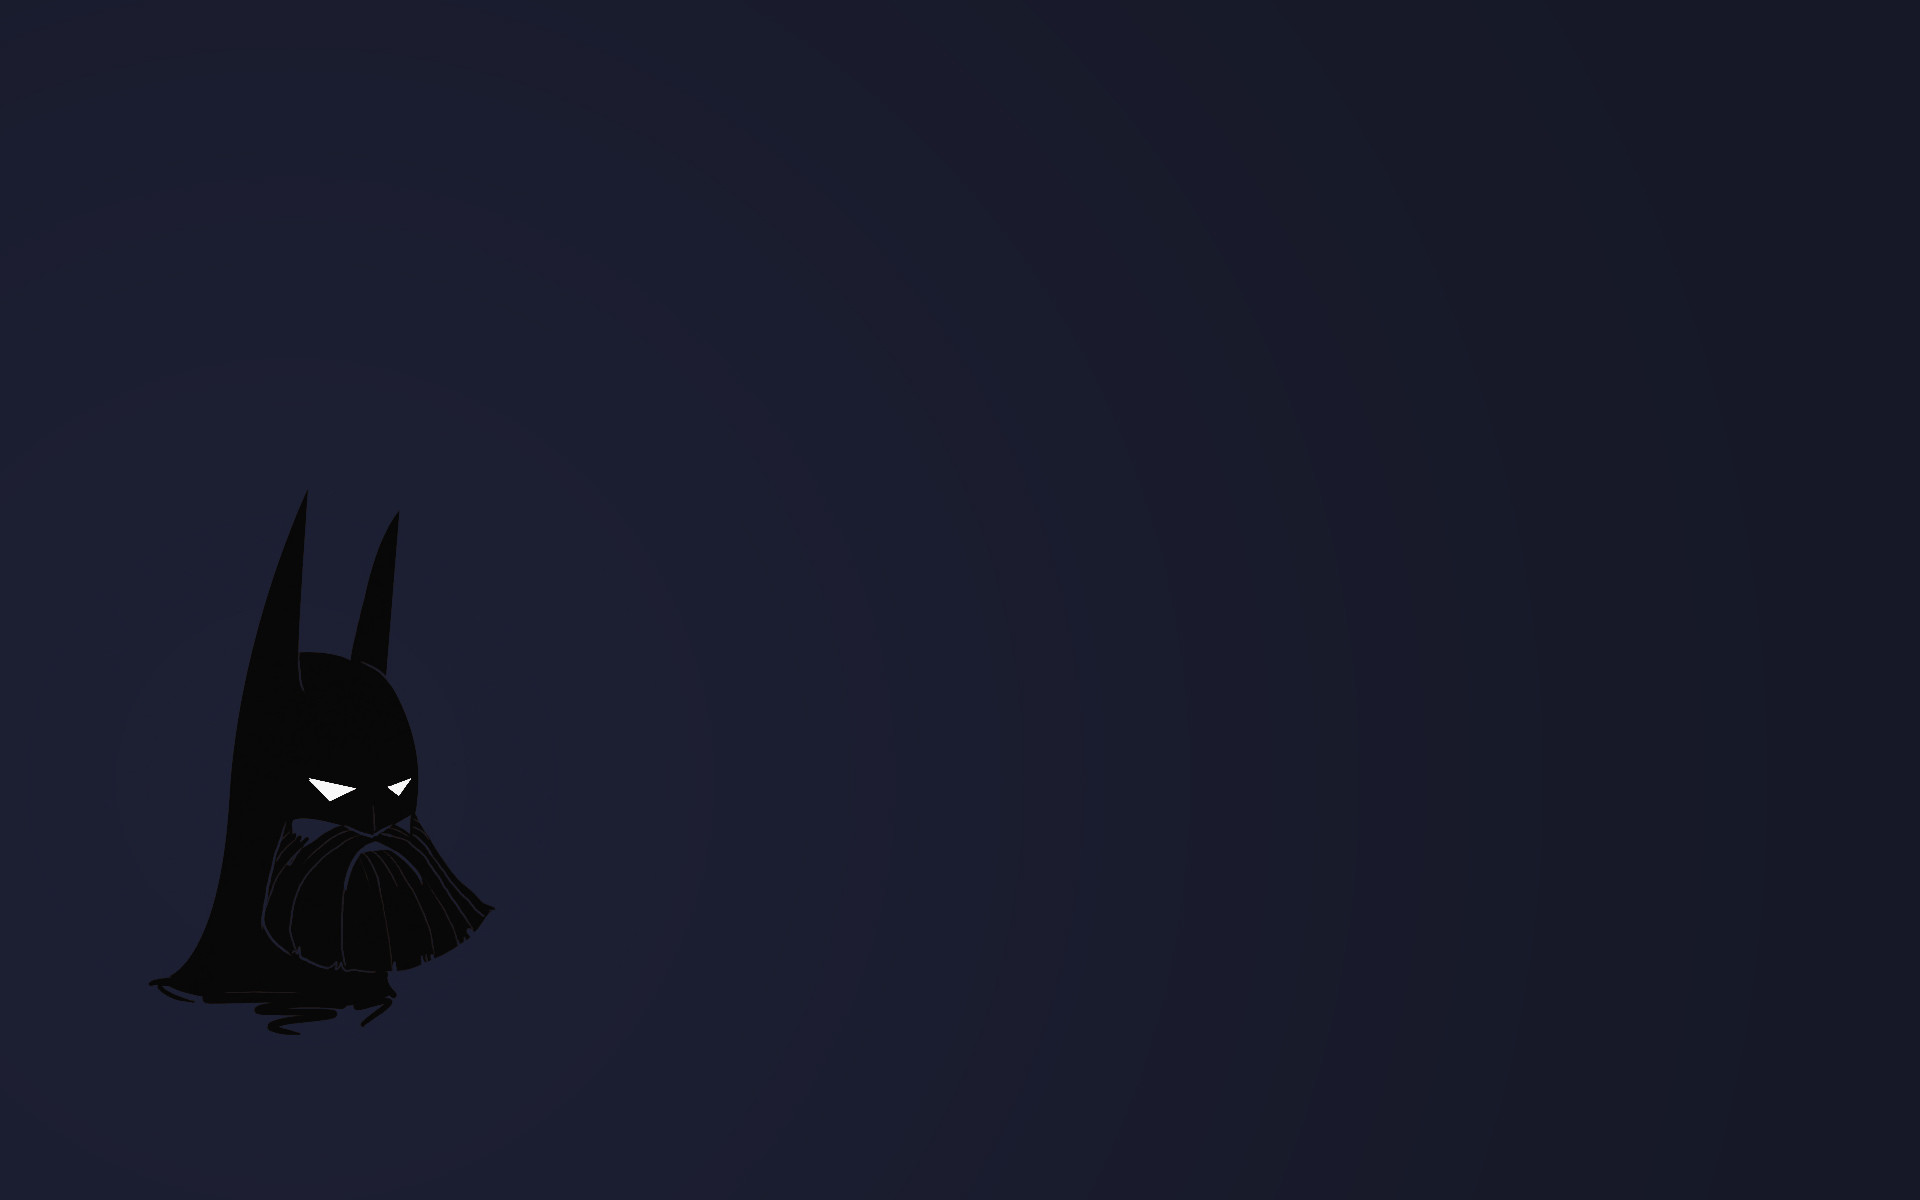 1920x1200 Bearded: Batman Wallpaper by Affubalator Bearded: Batman Wallpaper by  Affubalator